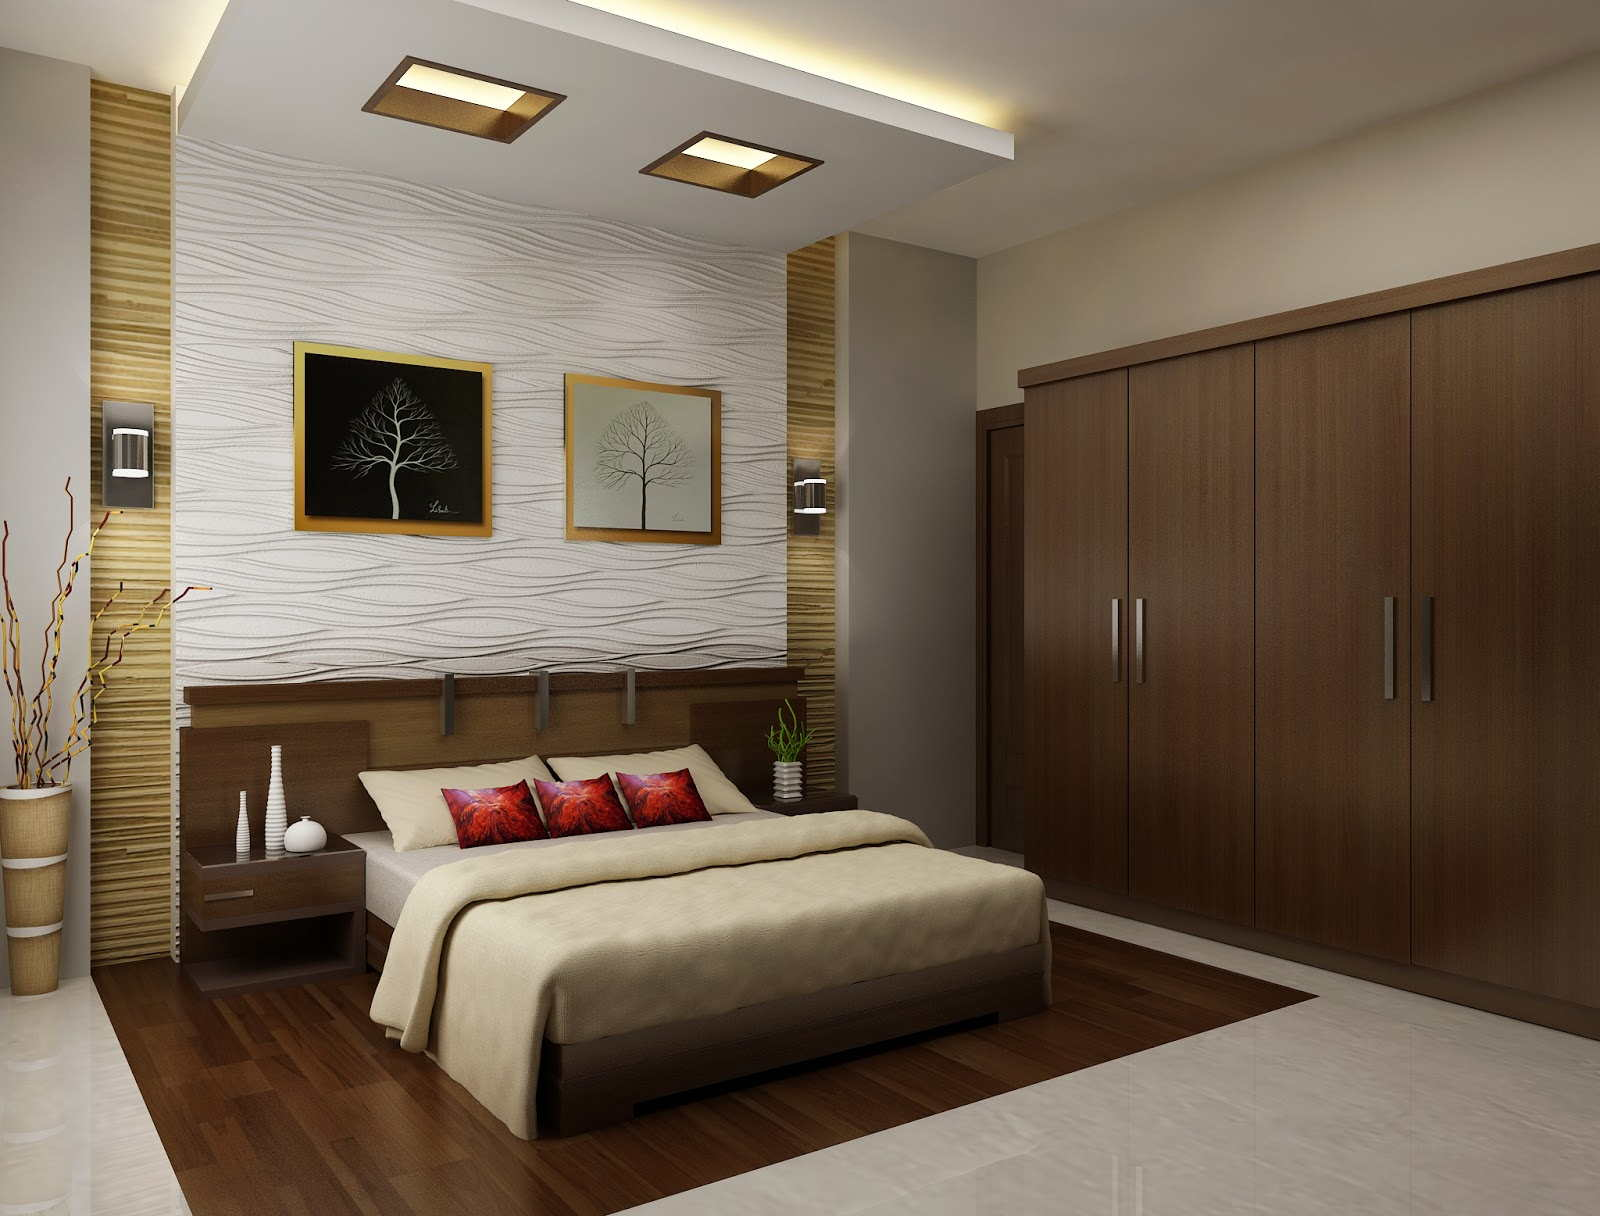 11 attractive bedroom design ideas that will make your - Interior design styles living room ...